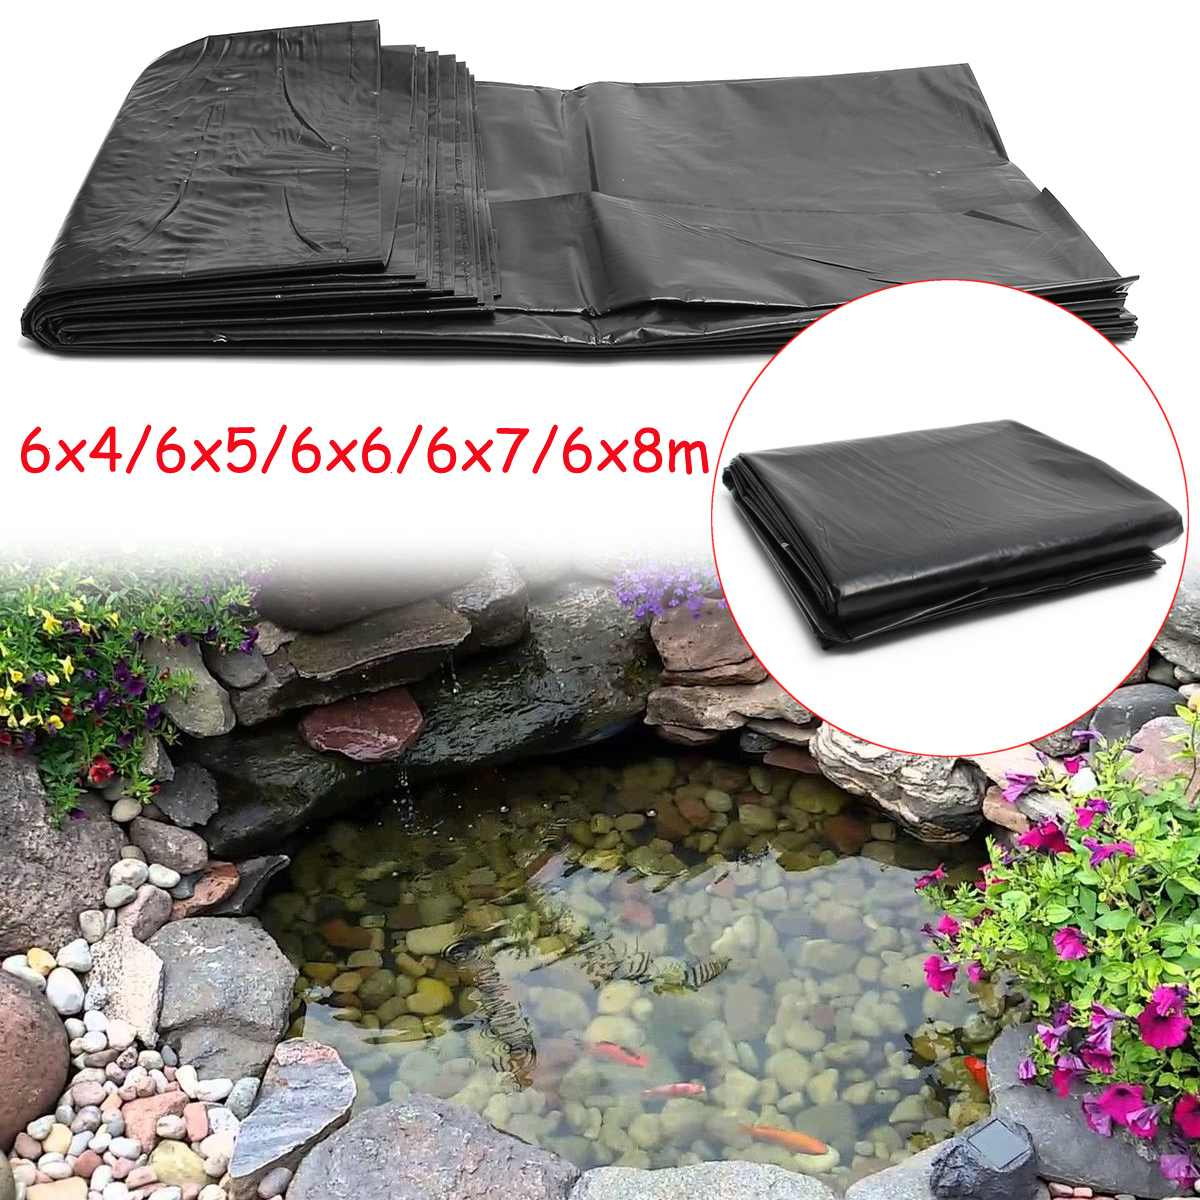 HDPE Fish Pond Liner Rubber Waterproof Membrane Garden Pond Landscaping Pool Thick Liner Cloth 6x8m / 6x7m / 6x6m / 6x5m / 6x4m